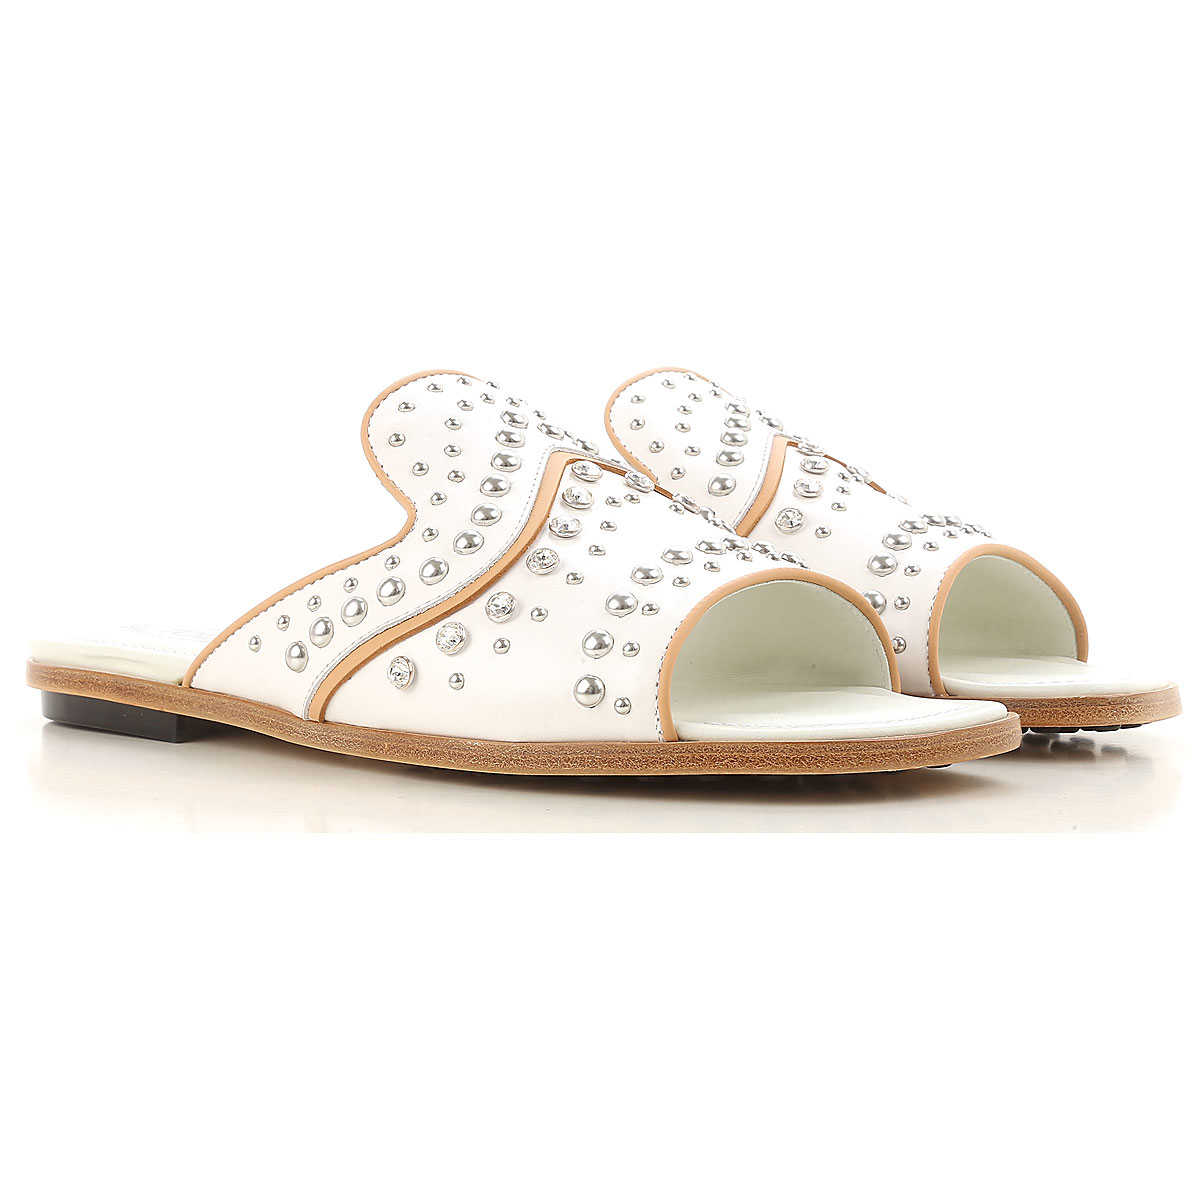 Tods Sandals for Women On Sale